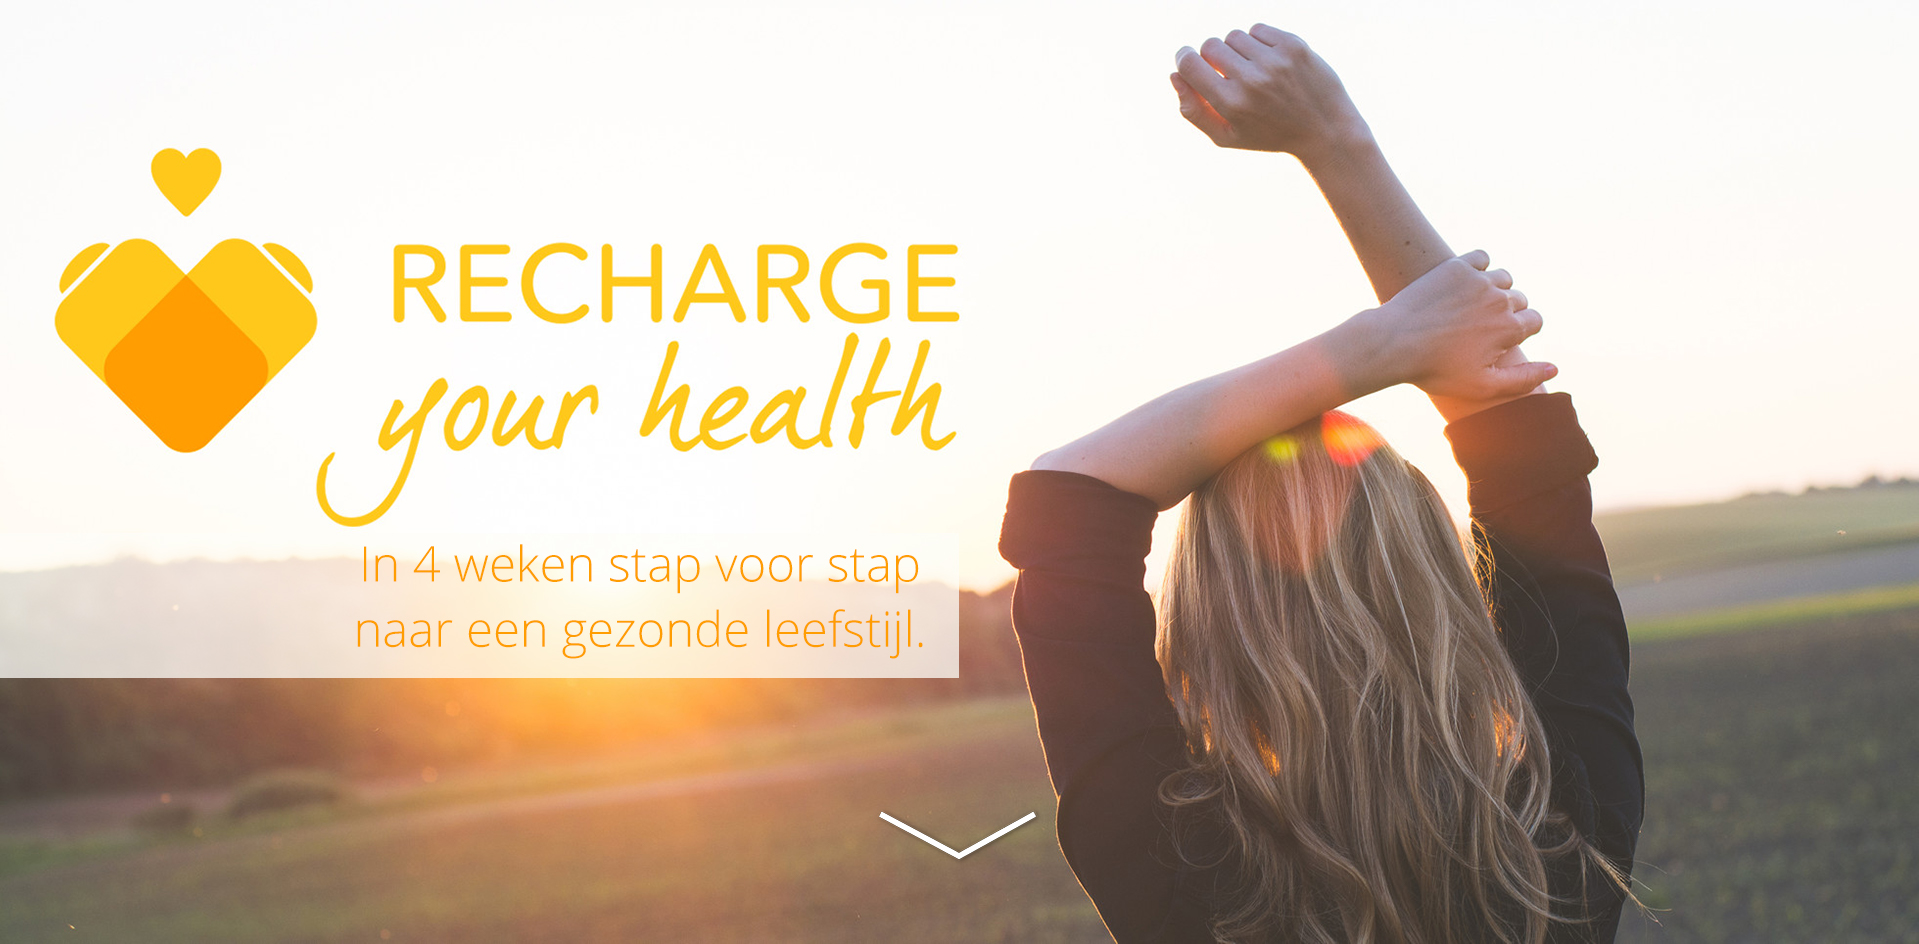 RECHARGE YOUR HEALTH